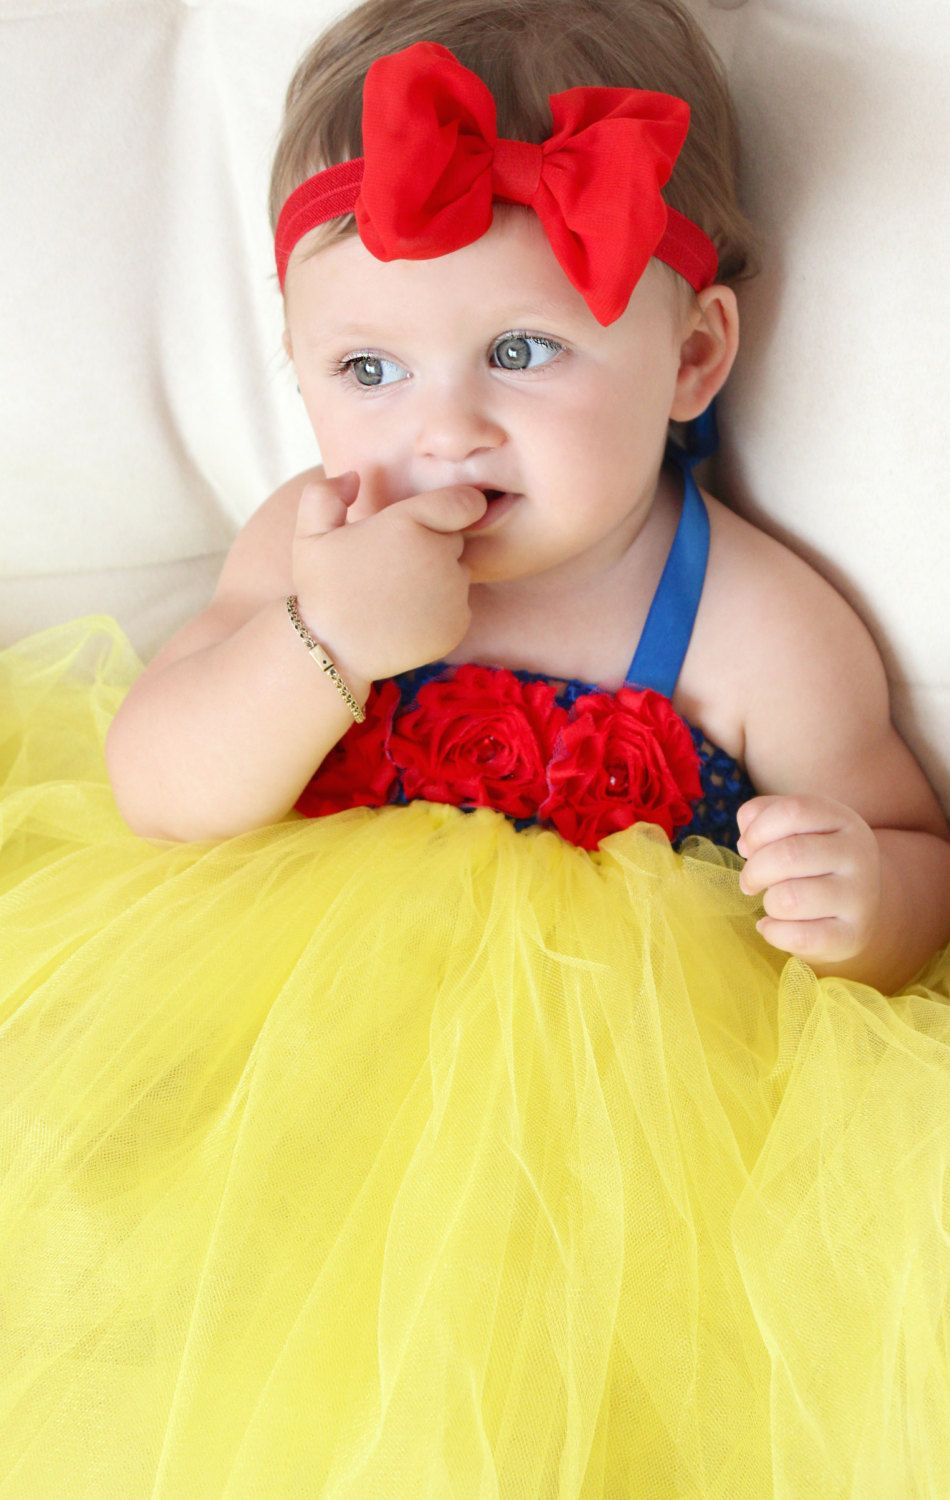 Beautiful Snow White Tutu Dress Costume with Red Hair Bow